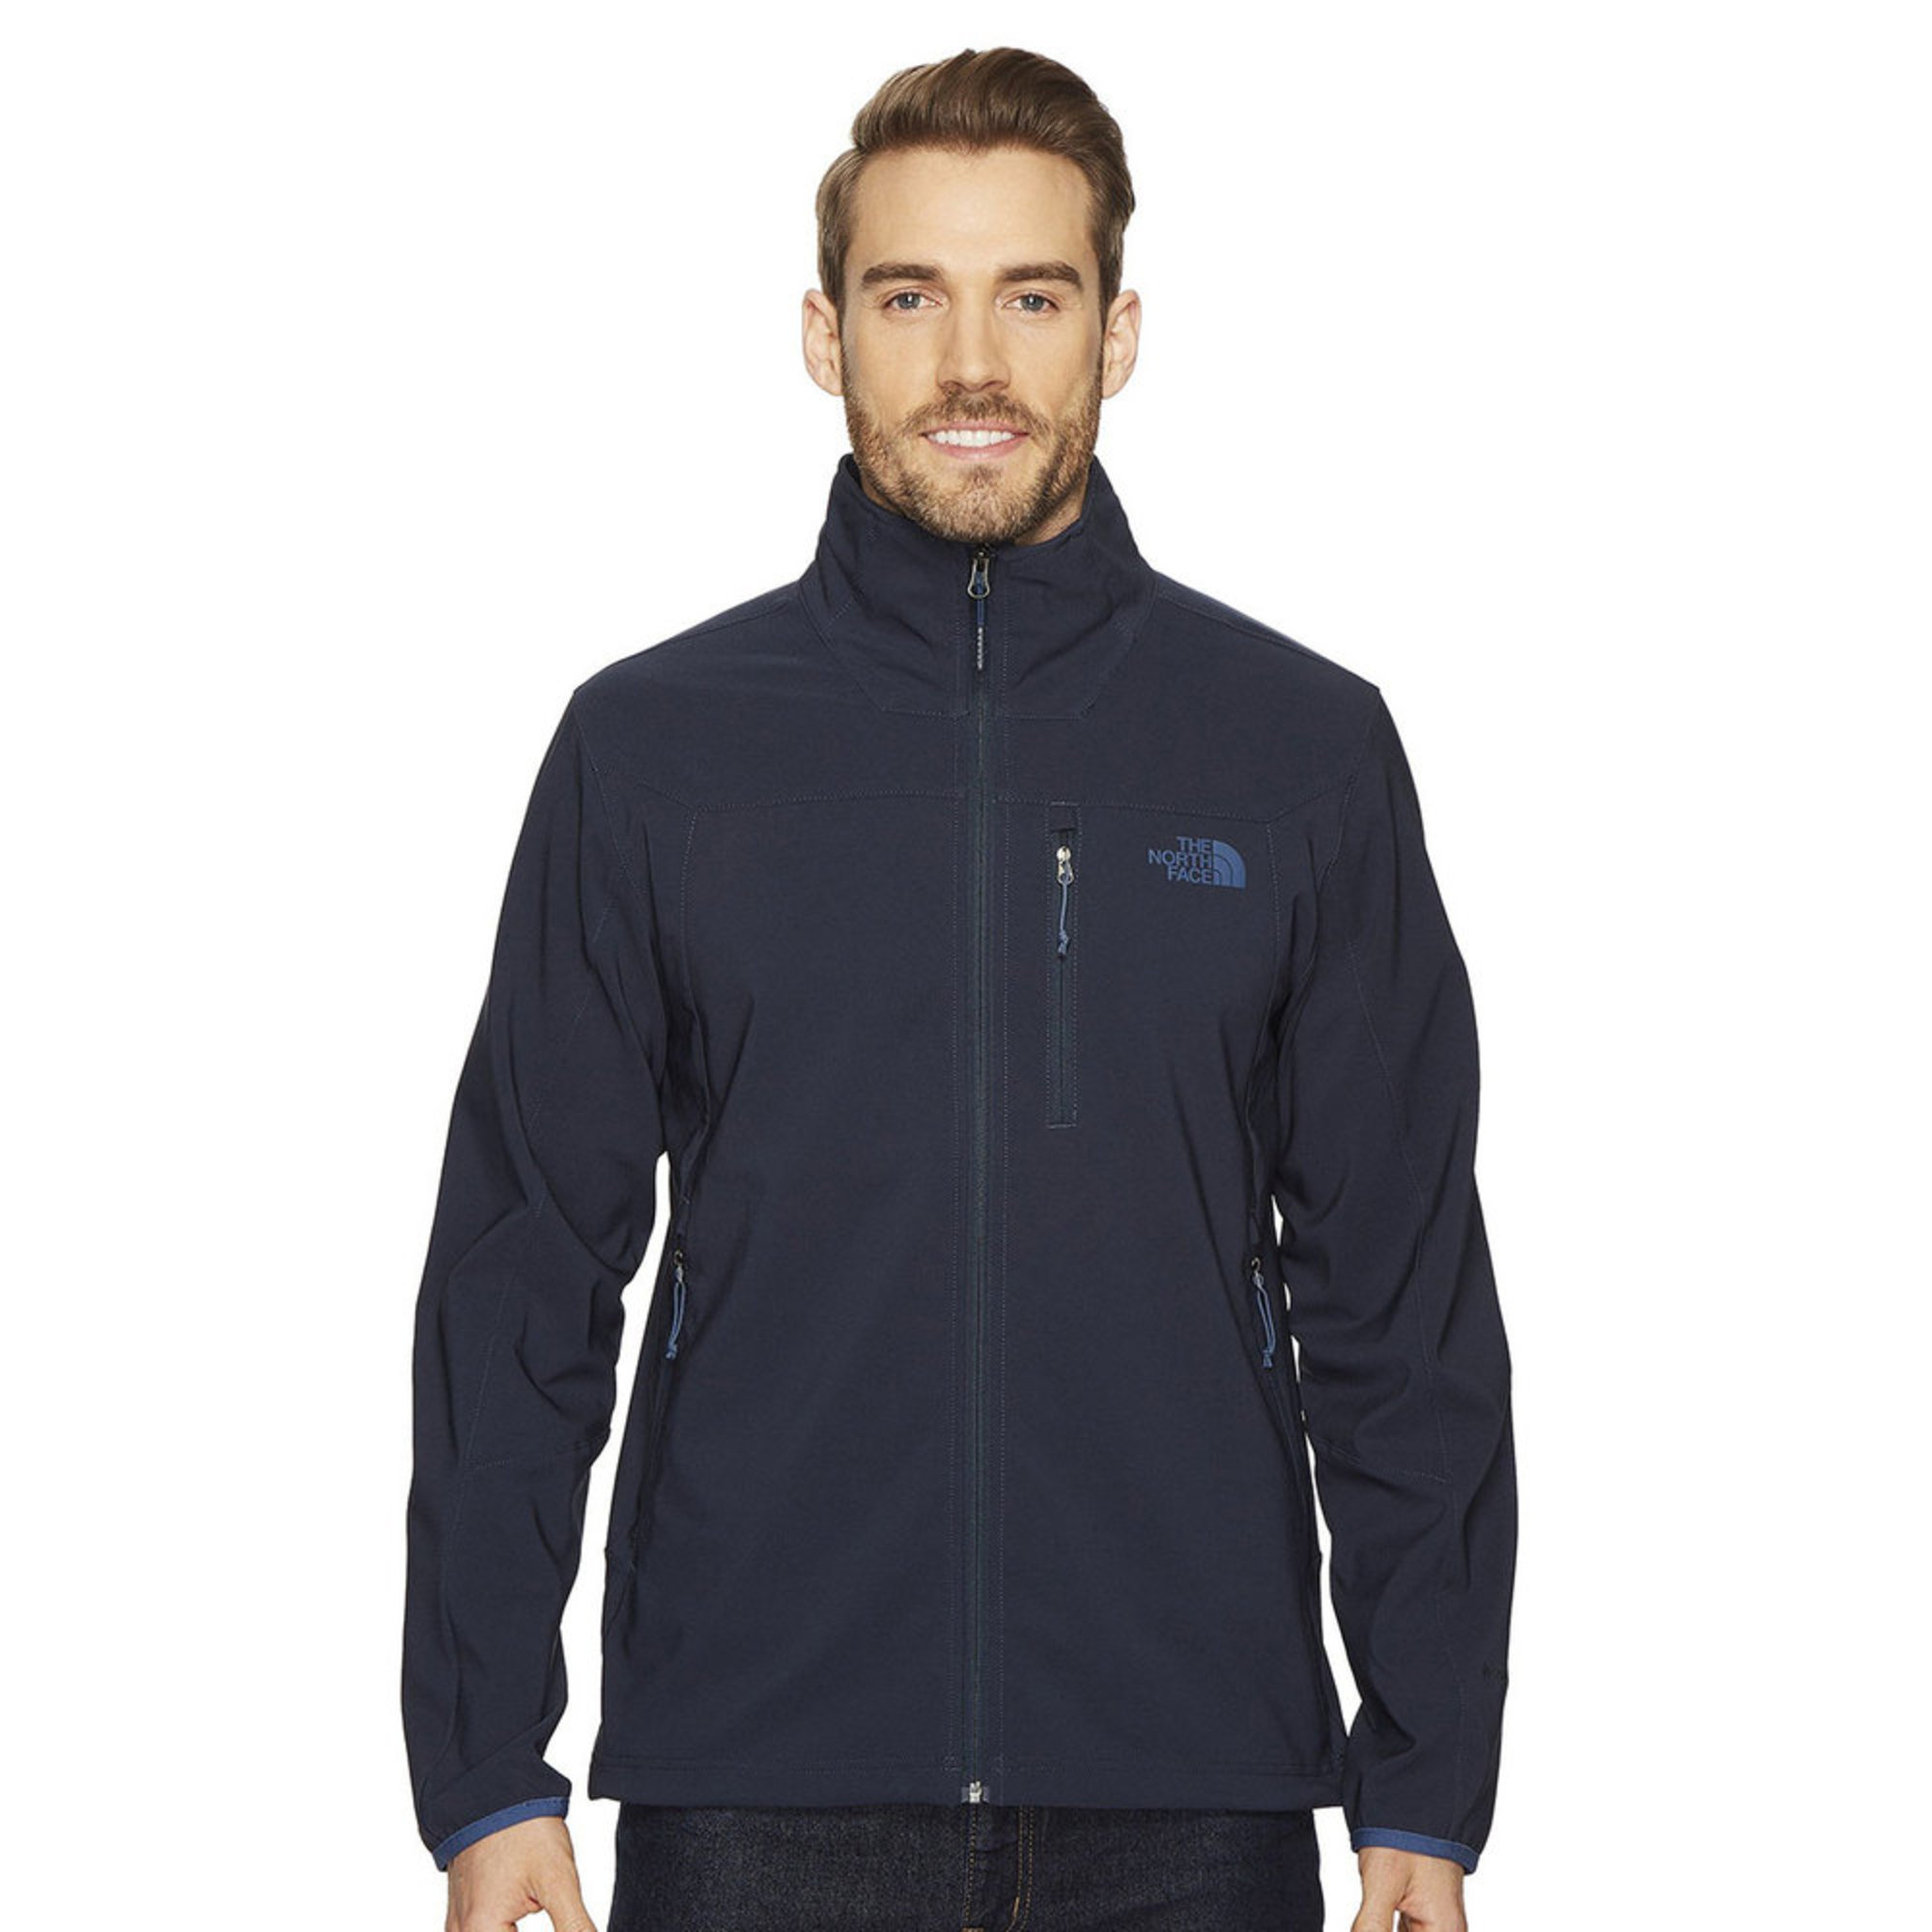 091e6f3530 The North Face Men s Apex Nimble Jacket